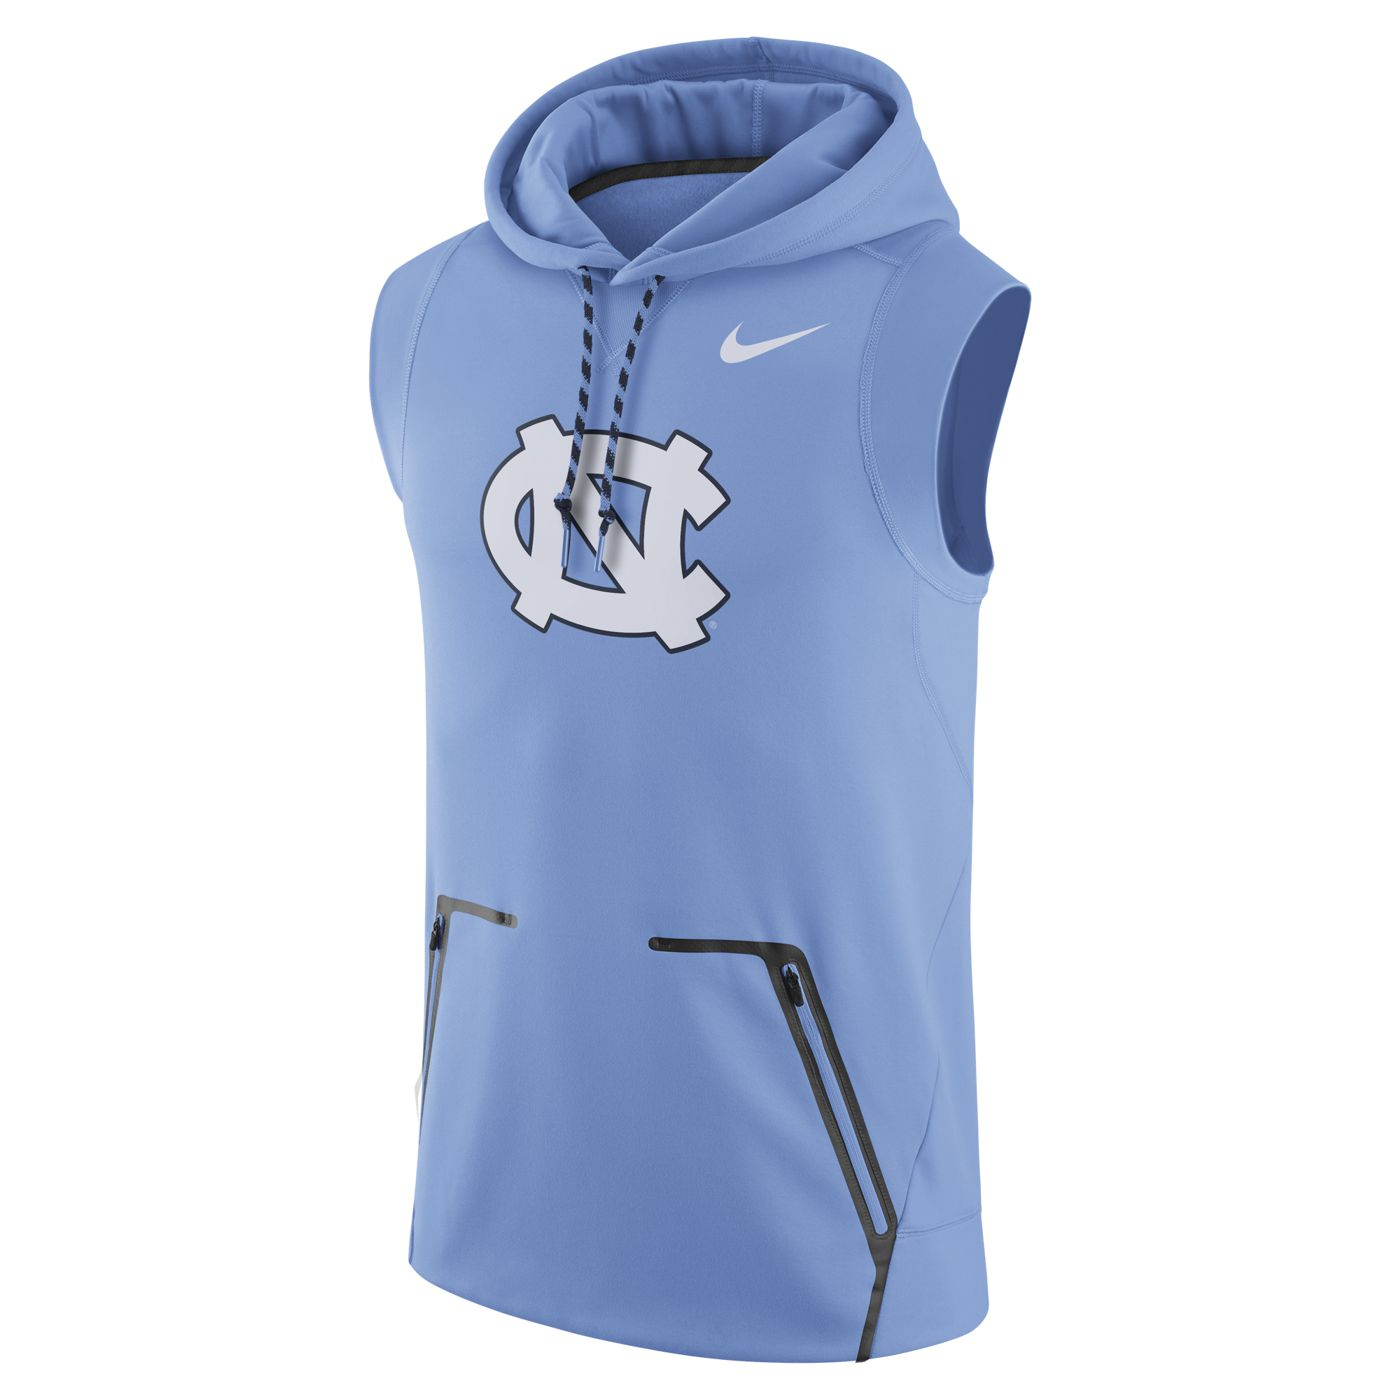 7a3530b2758e Johnny T-shirt - North Carolina Tar Heels - Nike Therma-FIT Hooded Vest  (CB) by Nike